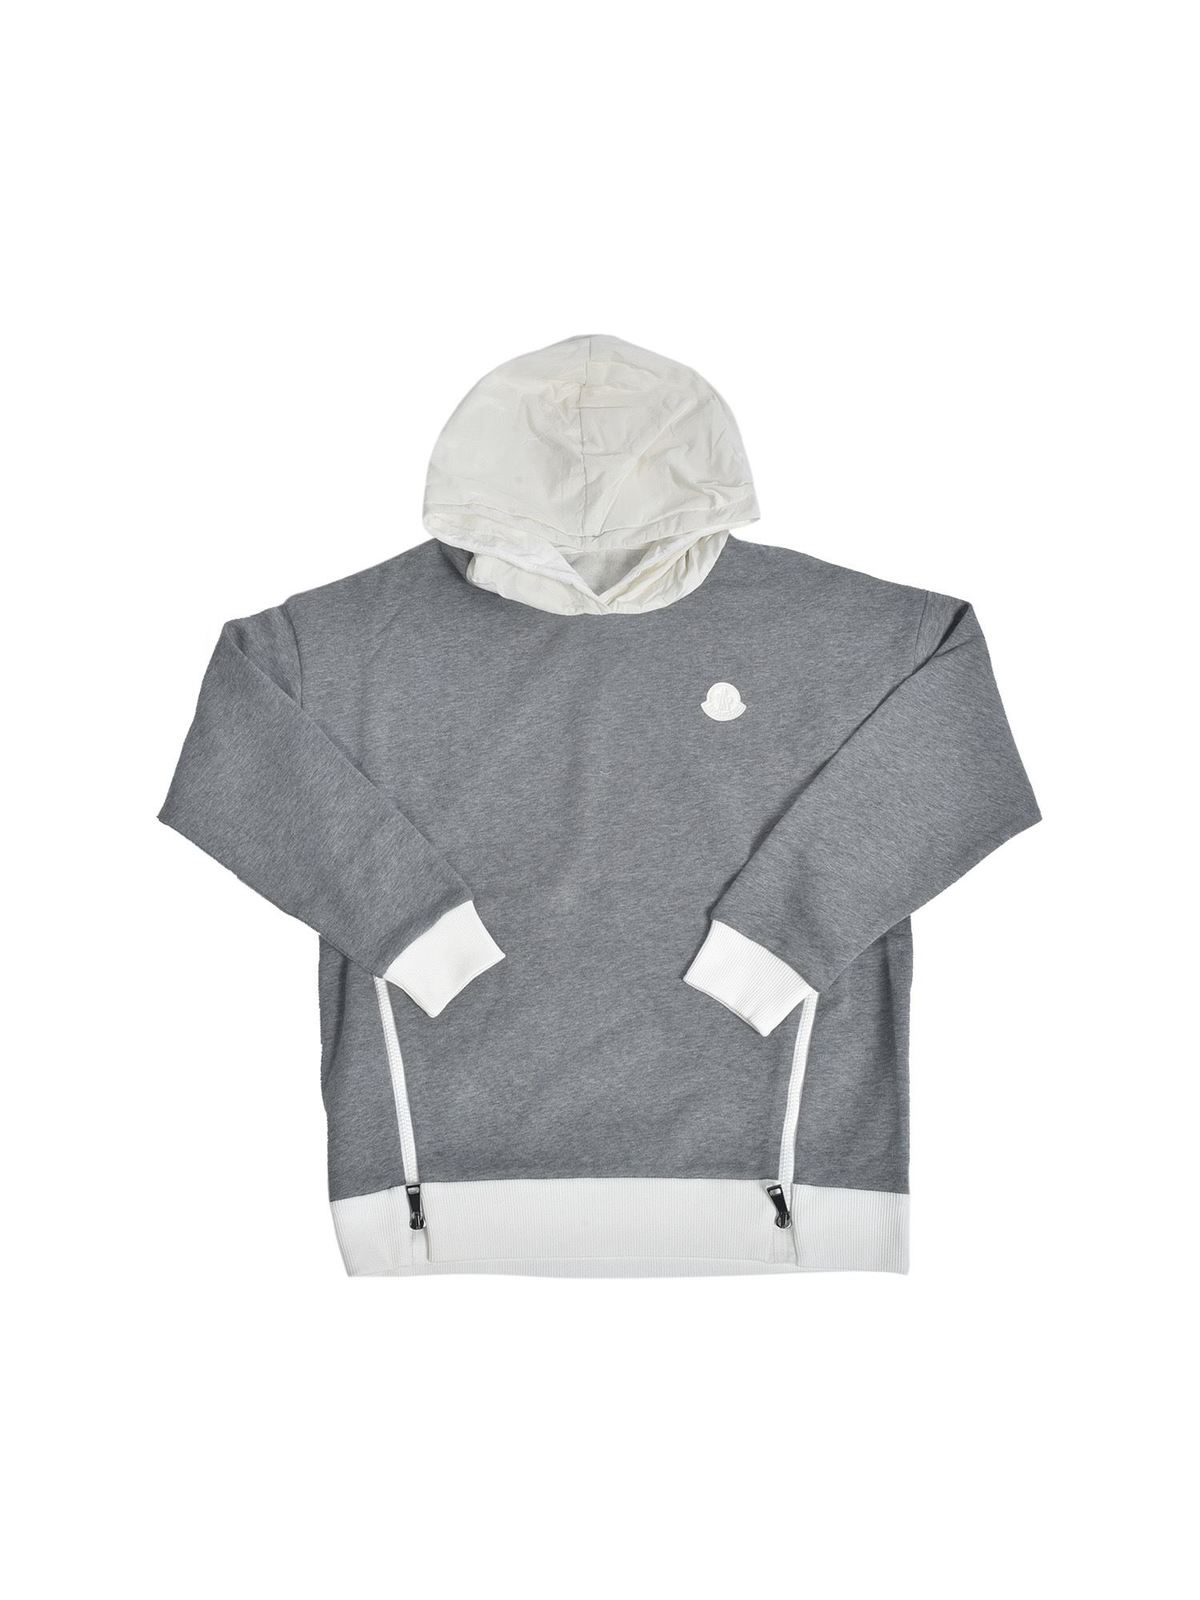 MONCLER JR LOGO PATCH SWEATSHIRT IN GREY MELANGE